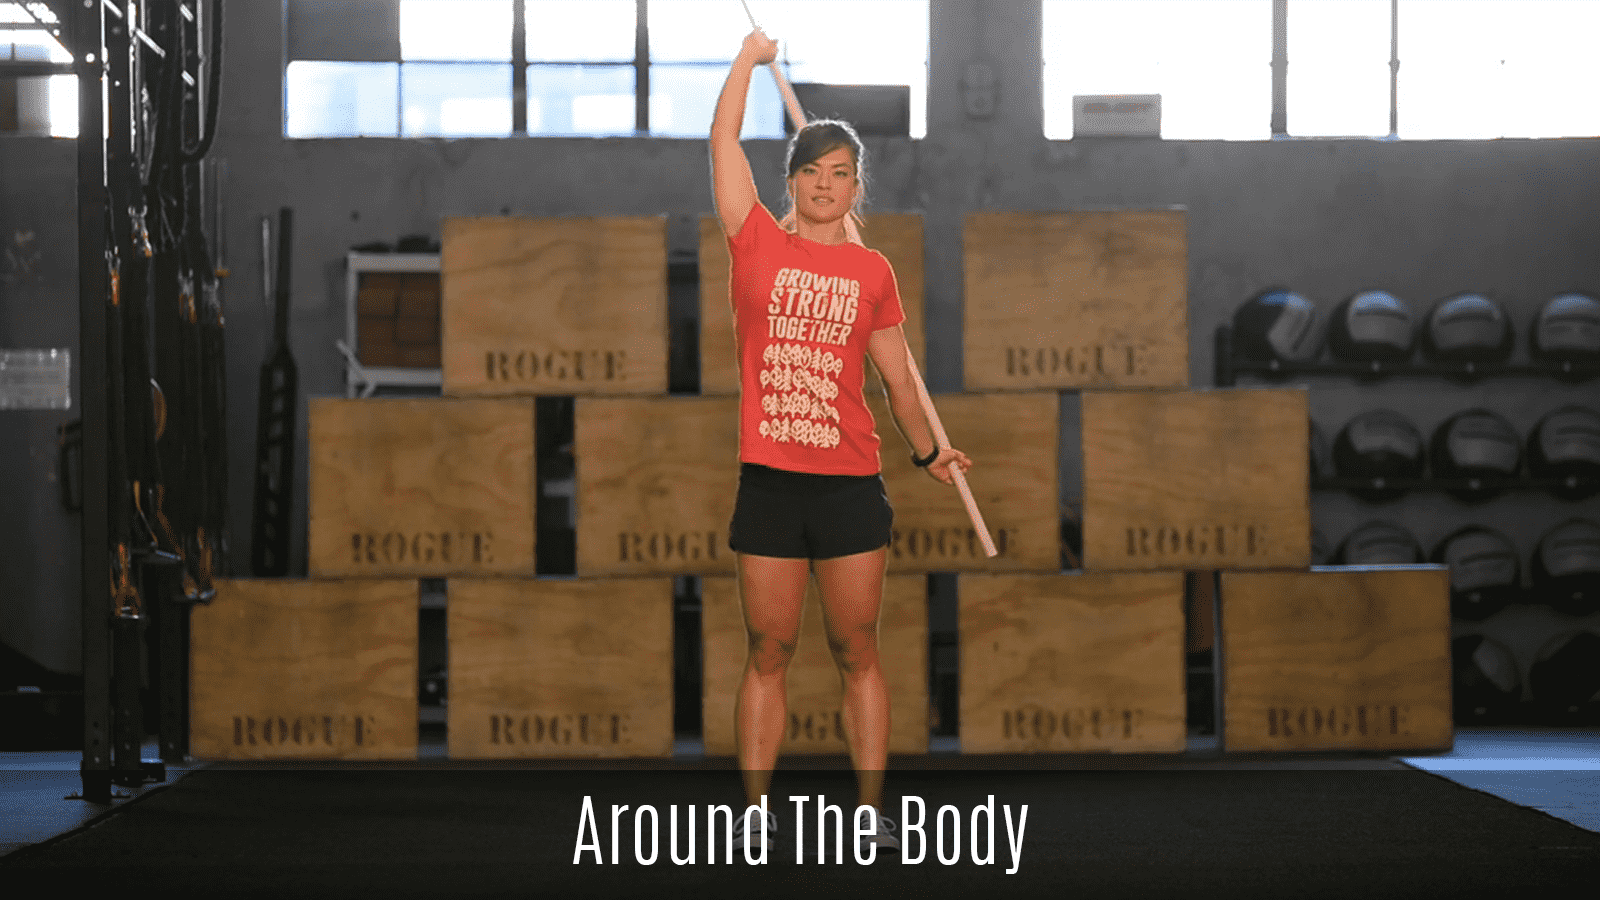 around the body exercise demo using pipe